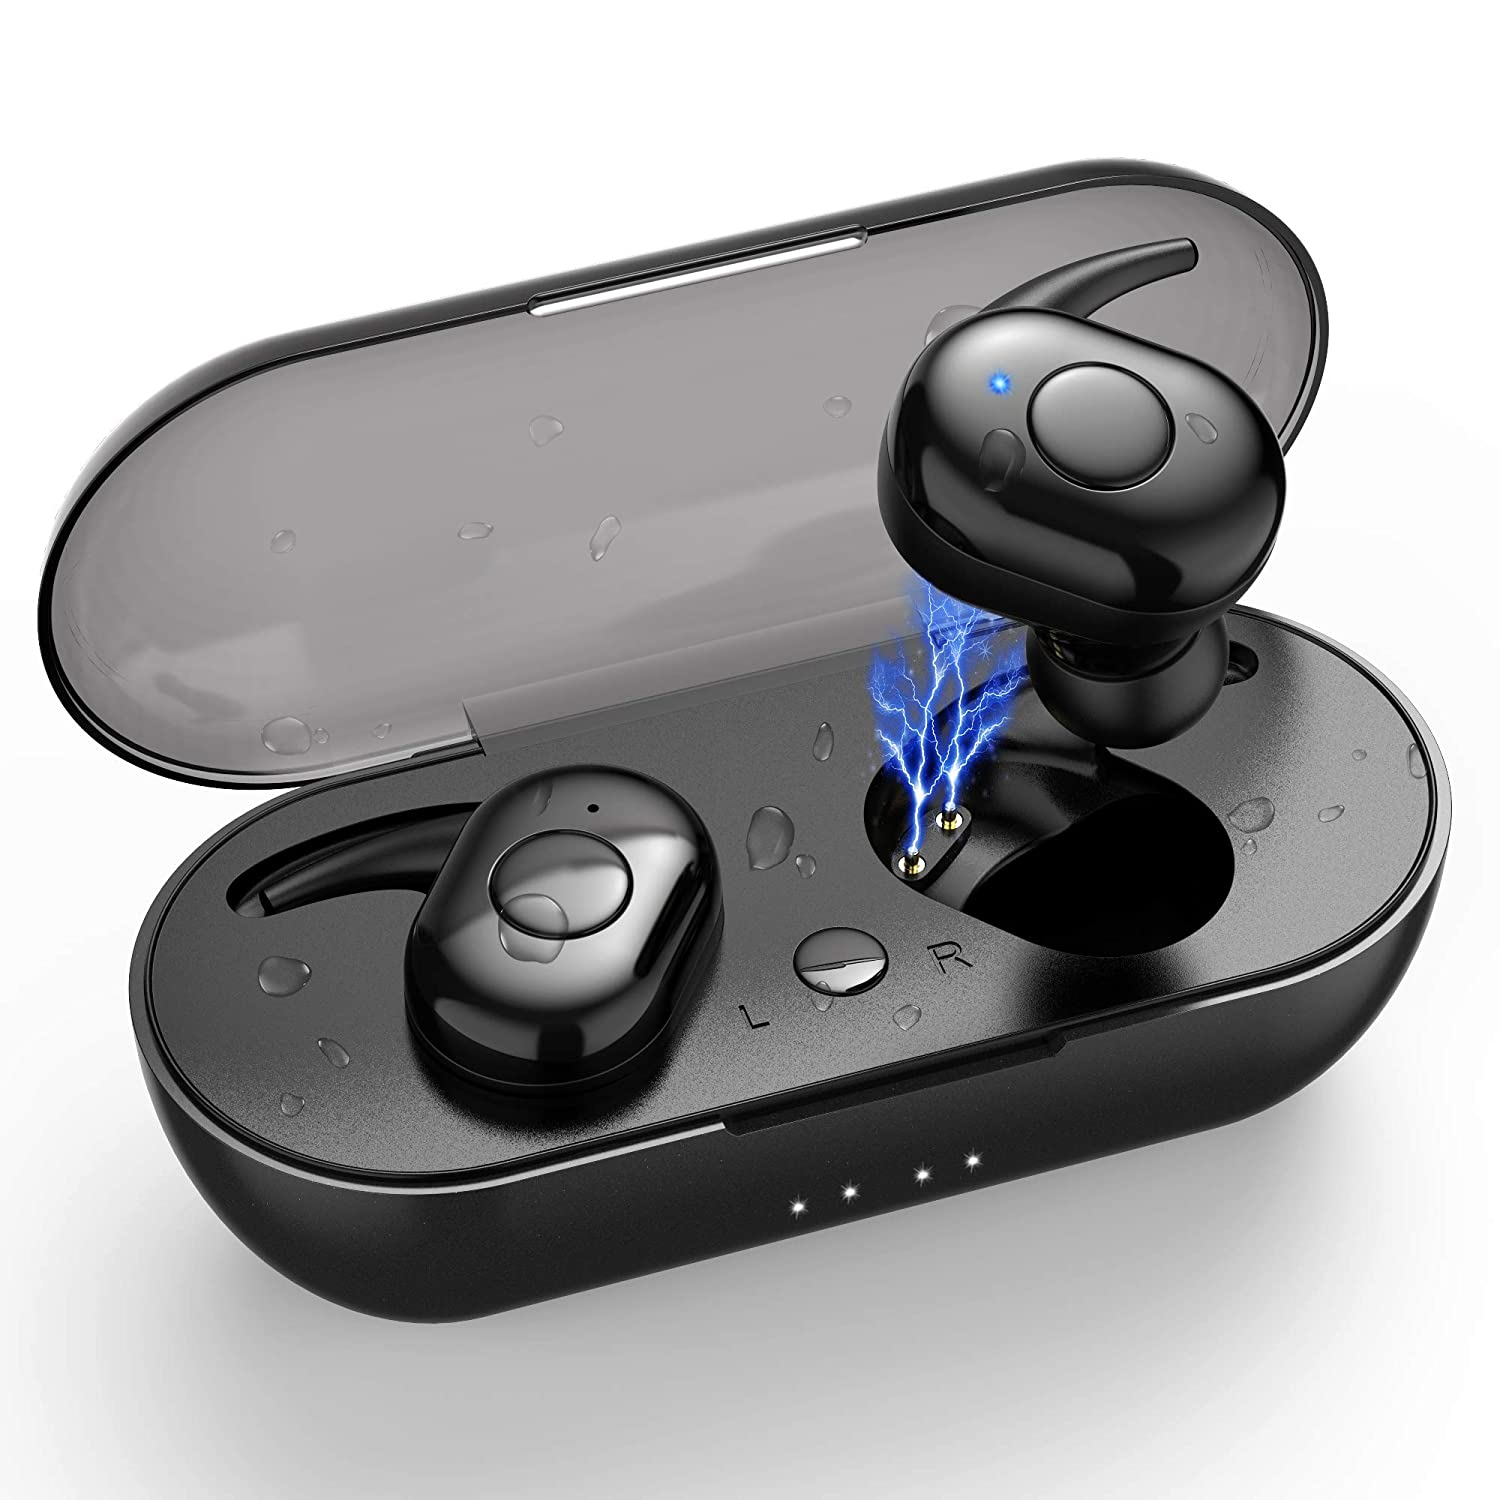 Best Truly Wireless Earbuds 2020.Wireless Earbuds 2020 Upgraded True Bluetooth Headphones Bluetooth 5 0 Ipx7 Waterproof Stereo Hi Fi Sound Wireless Earphones With Portable